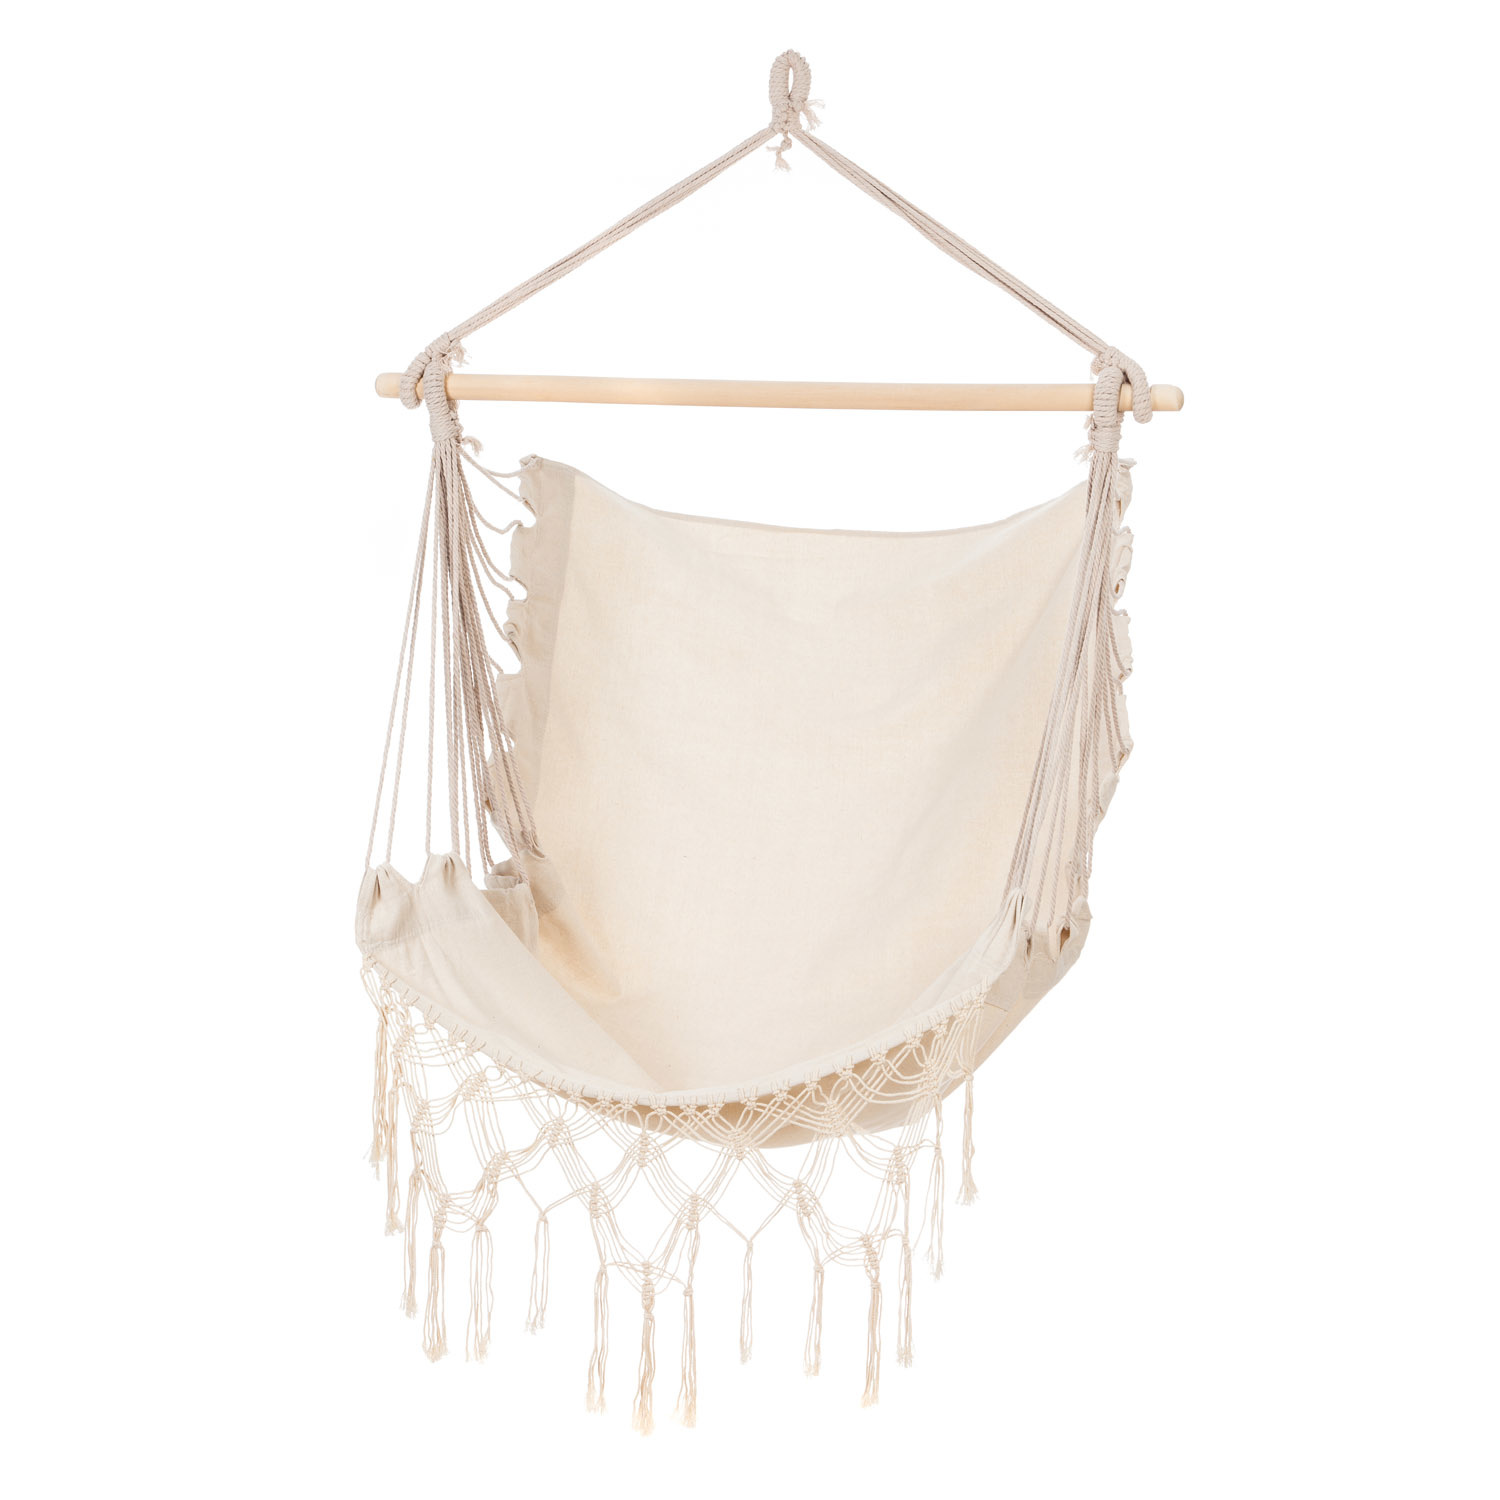 Evergreen Everyday Natural Hammock Chair with Fringe